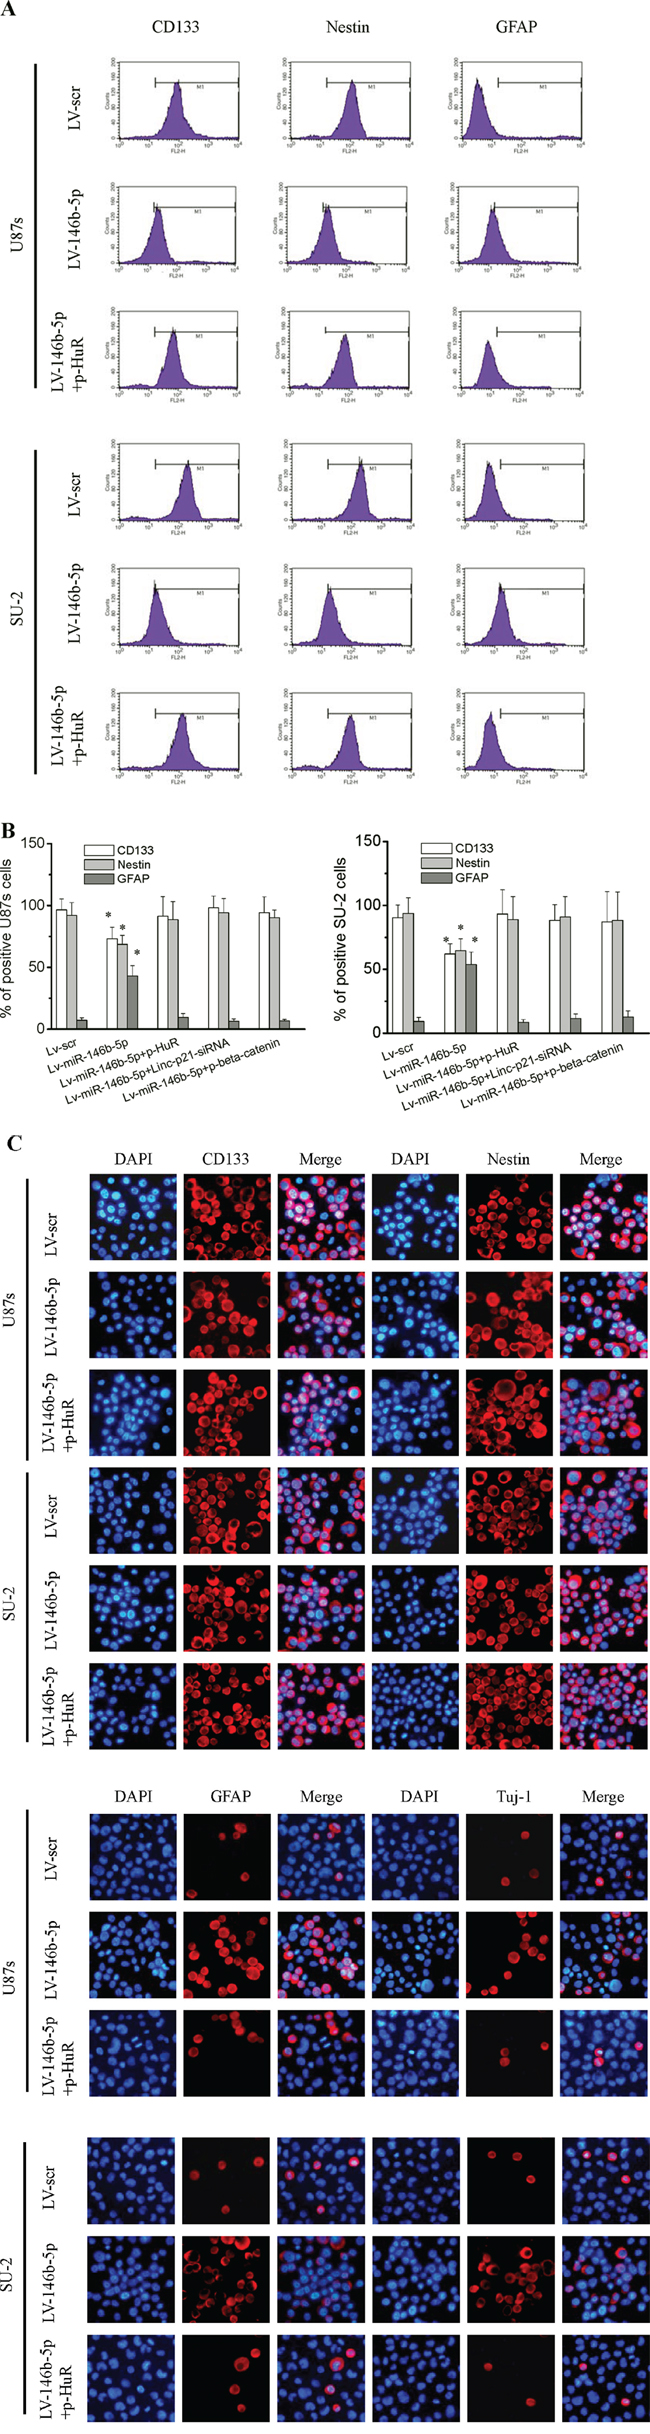 MiR-146b-5p overexpression decreased stemness and induced differentiation in GSCs.